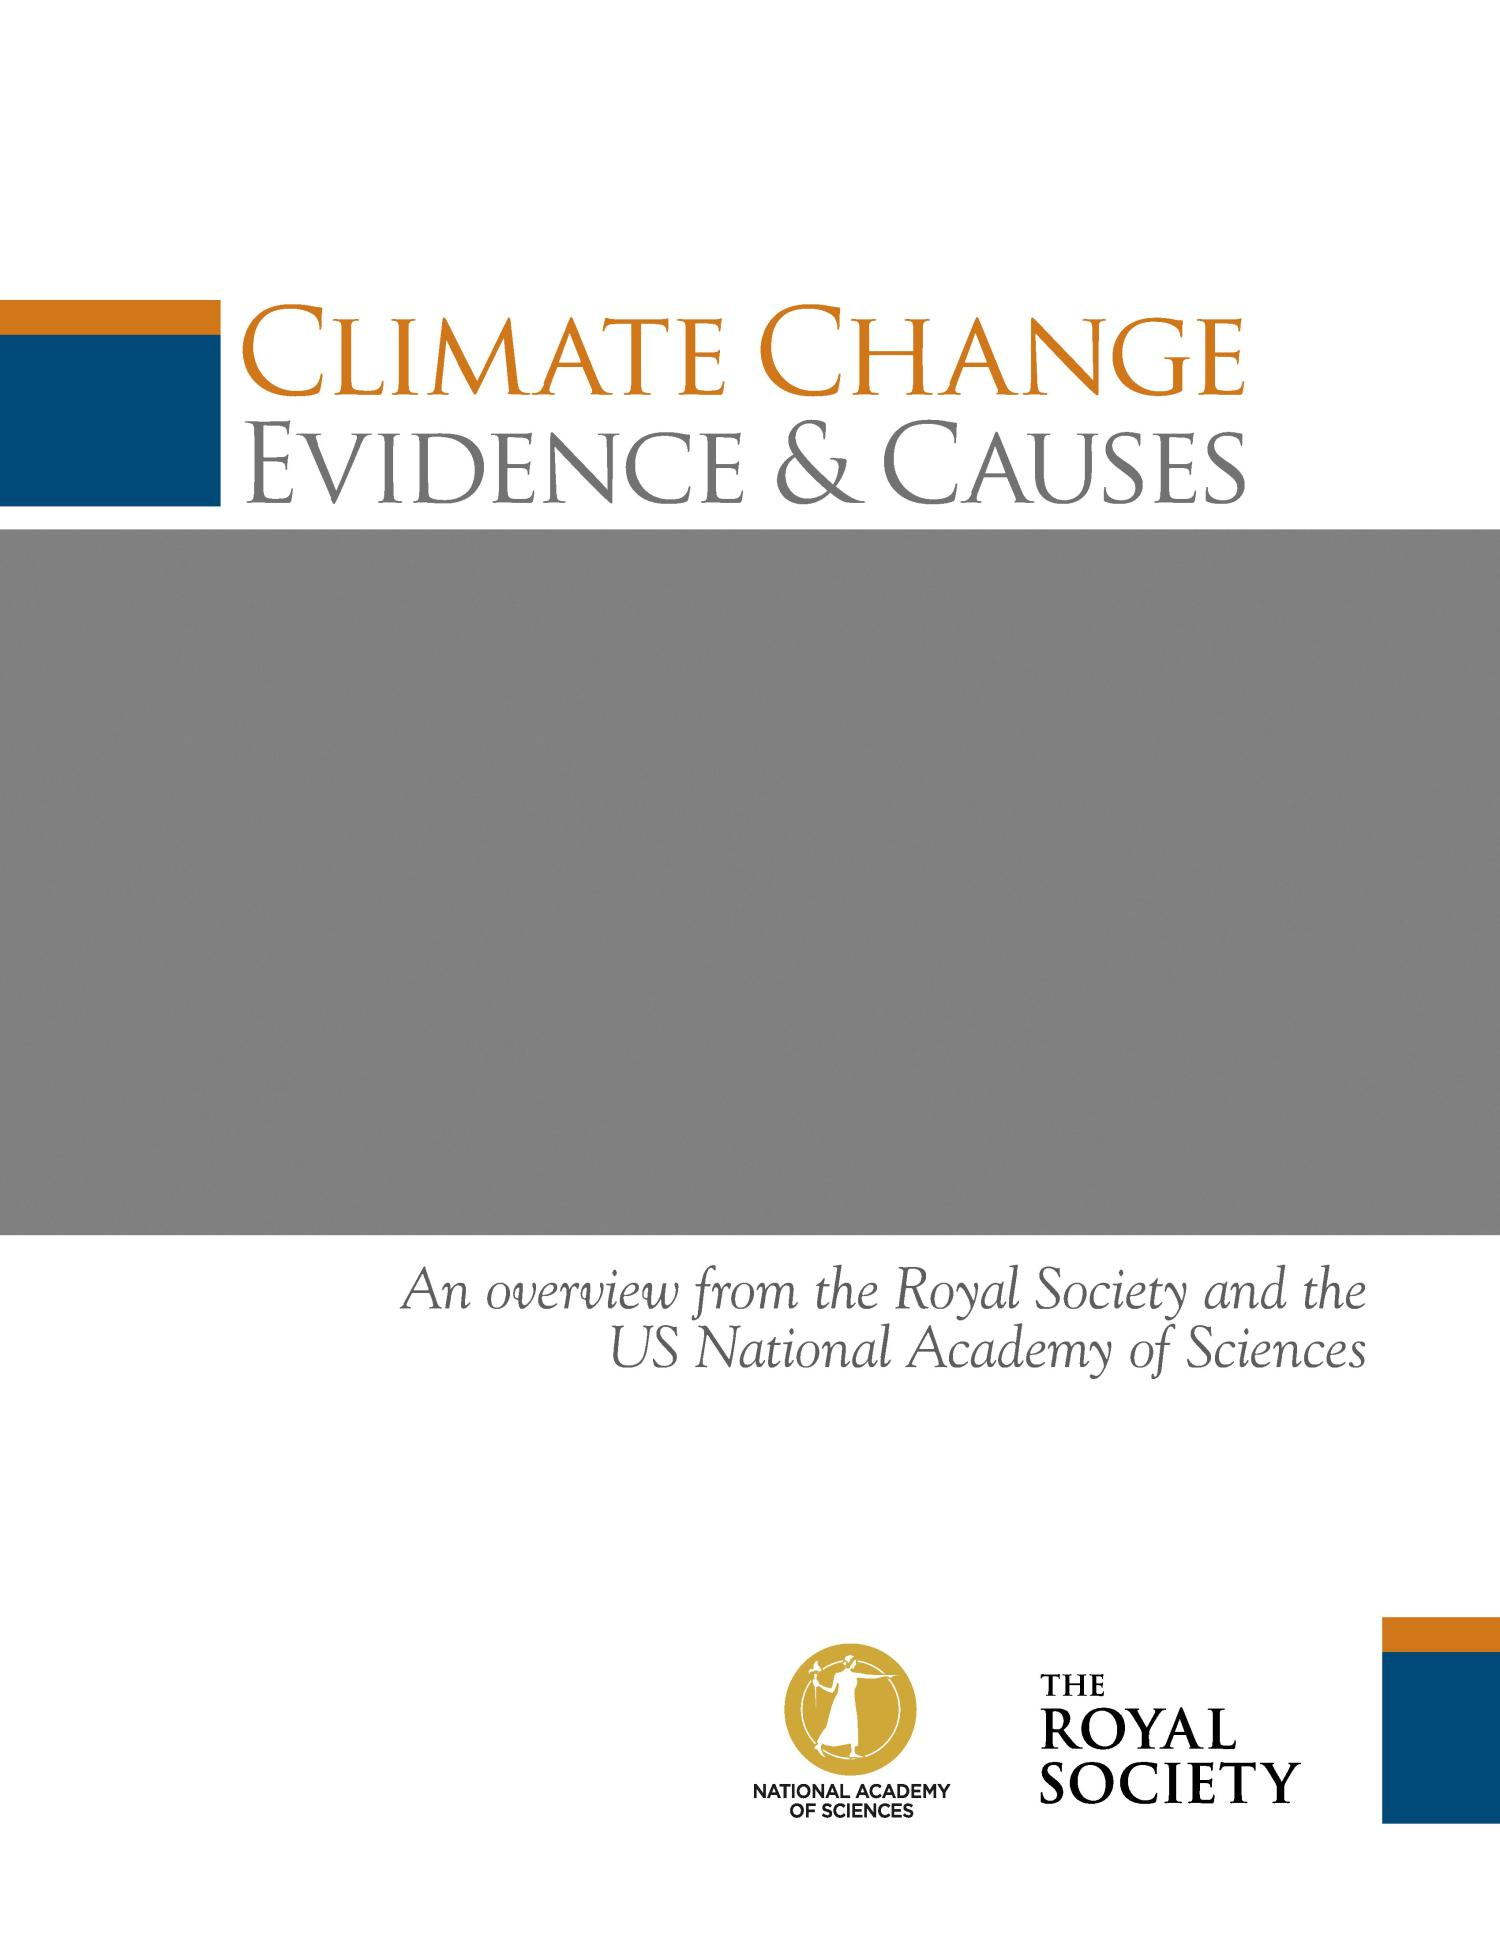 Climate Change Evidence & Causes                                                                                                      [Sequence #]: 1 of 36